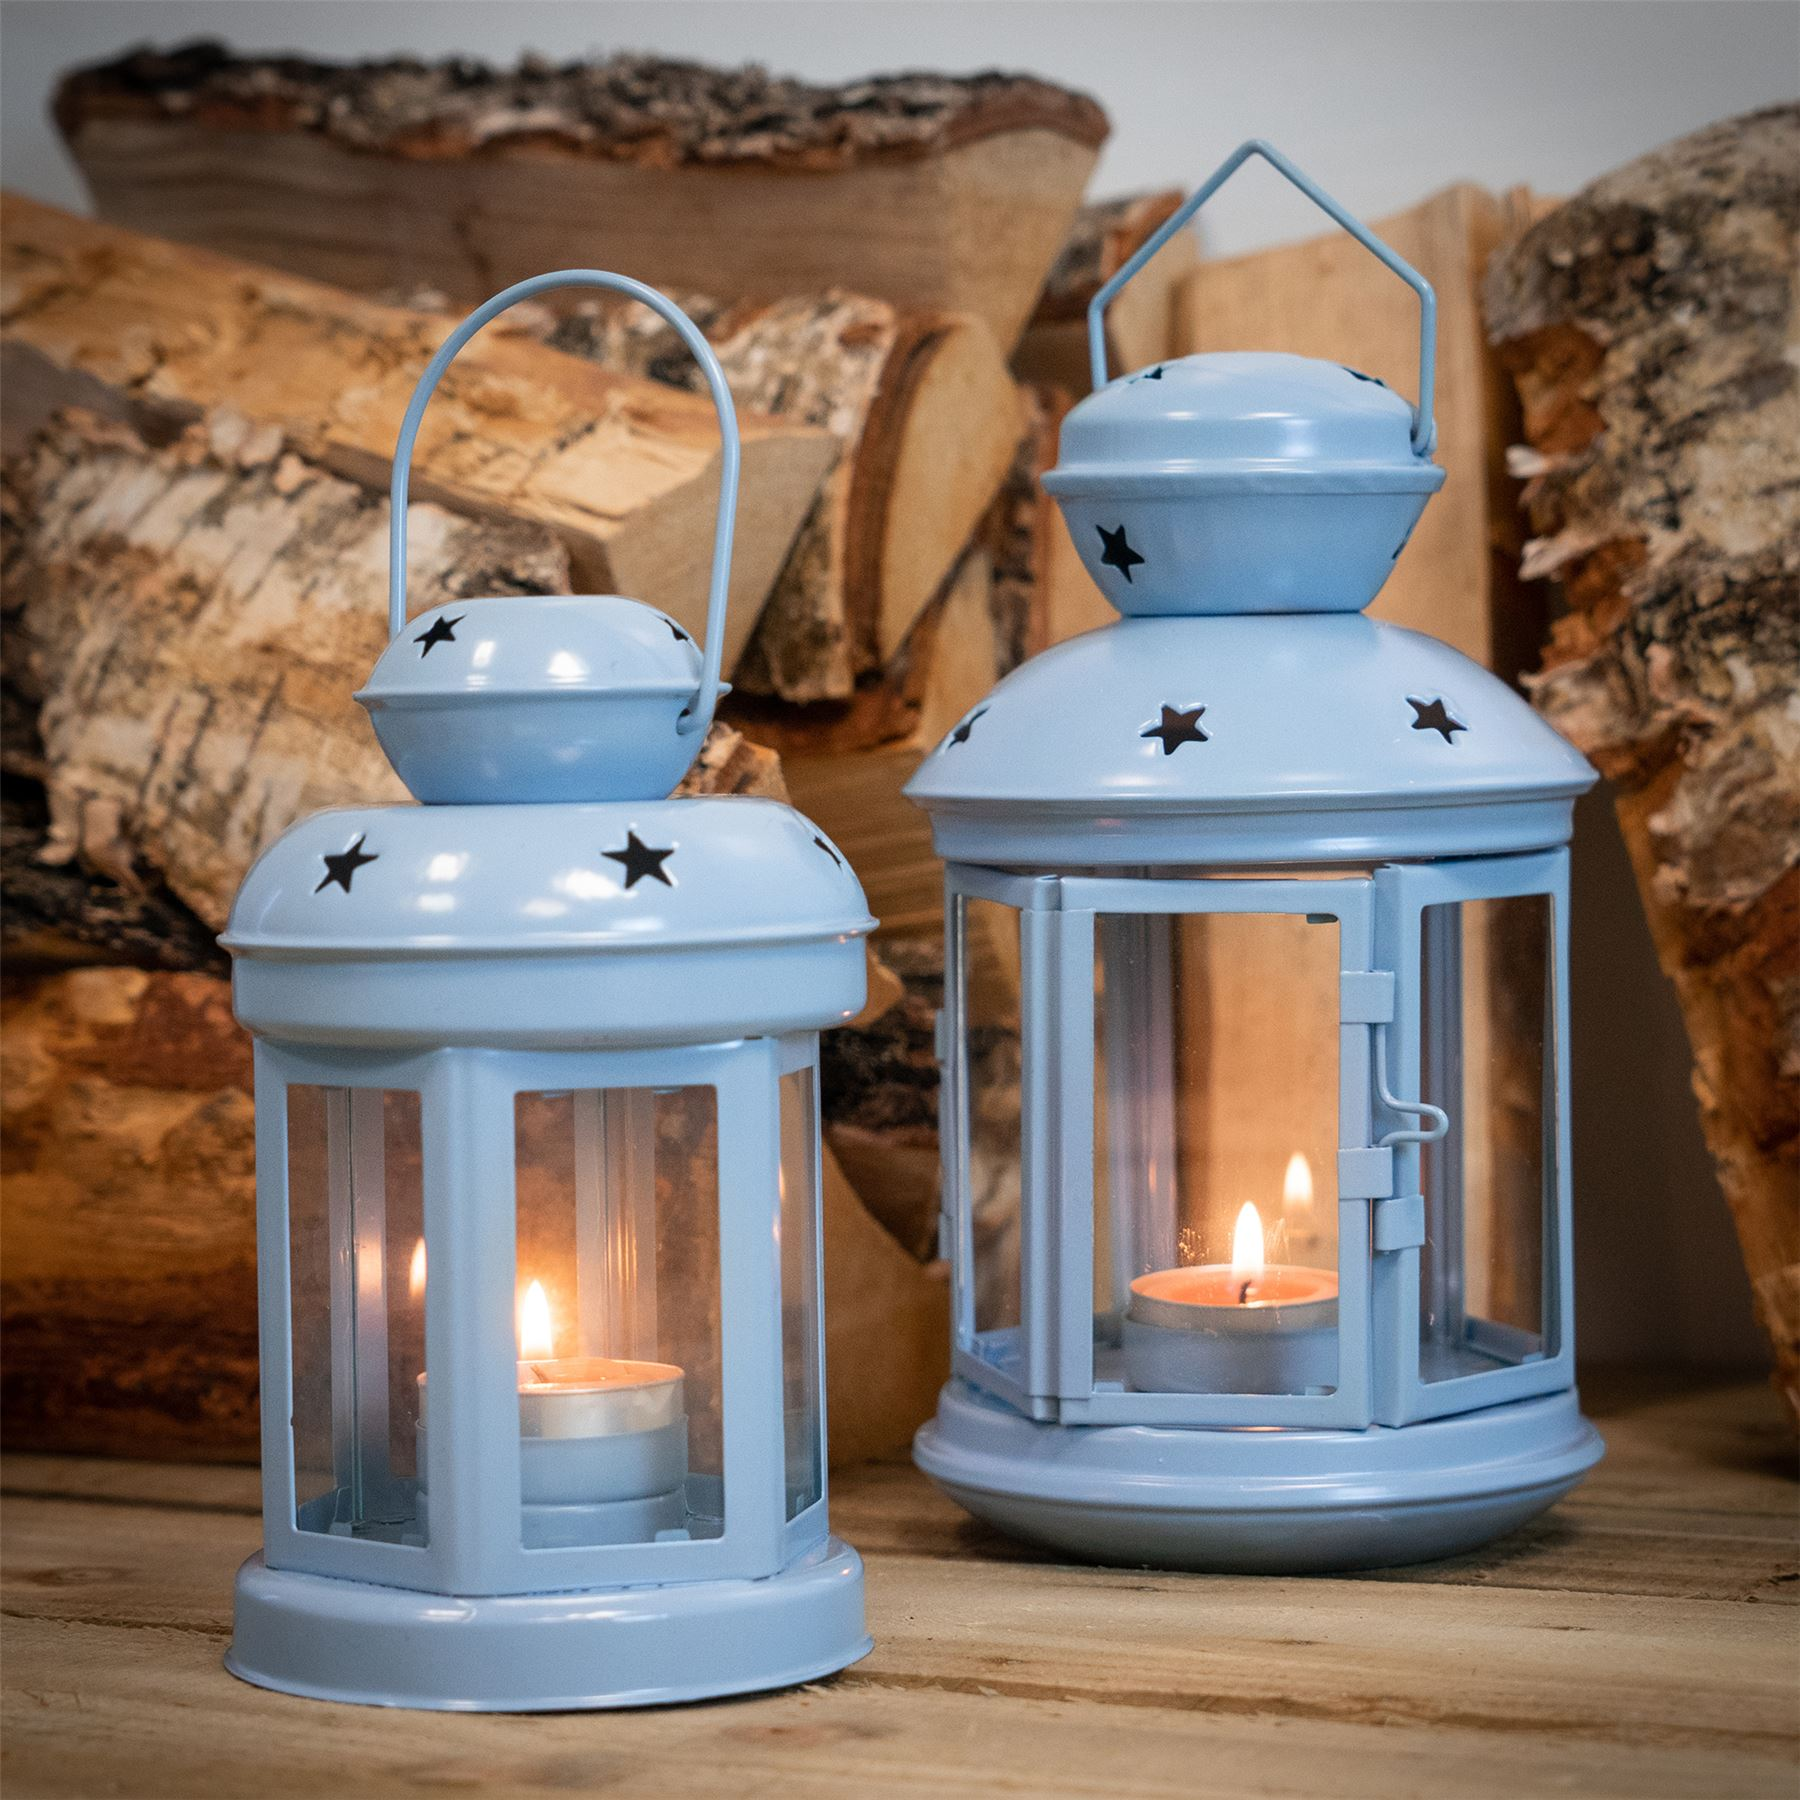 Metal-Candle-Lanterns-Tealight-Holders-Vintage-French-Moroccan-Style-20cm-x2 thumbnail 8